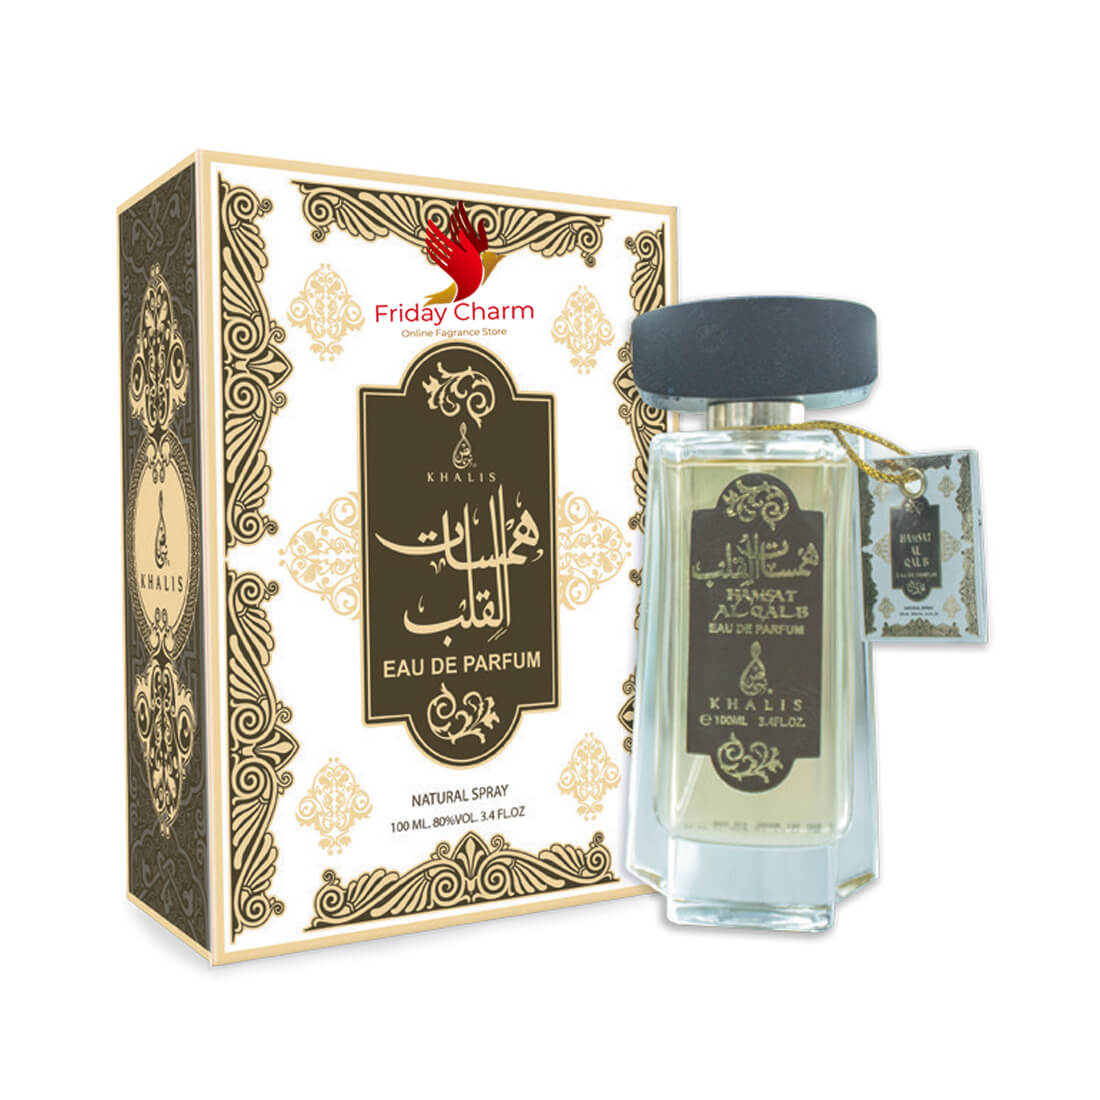 Khalis Hamsat Al qalb Fragrance Spray - 100 ml